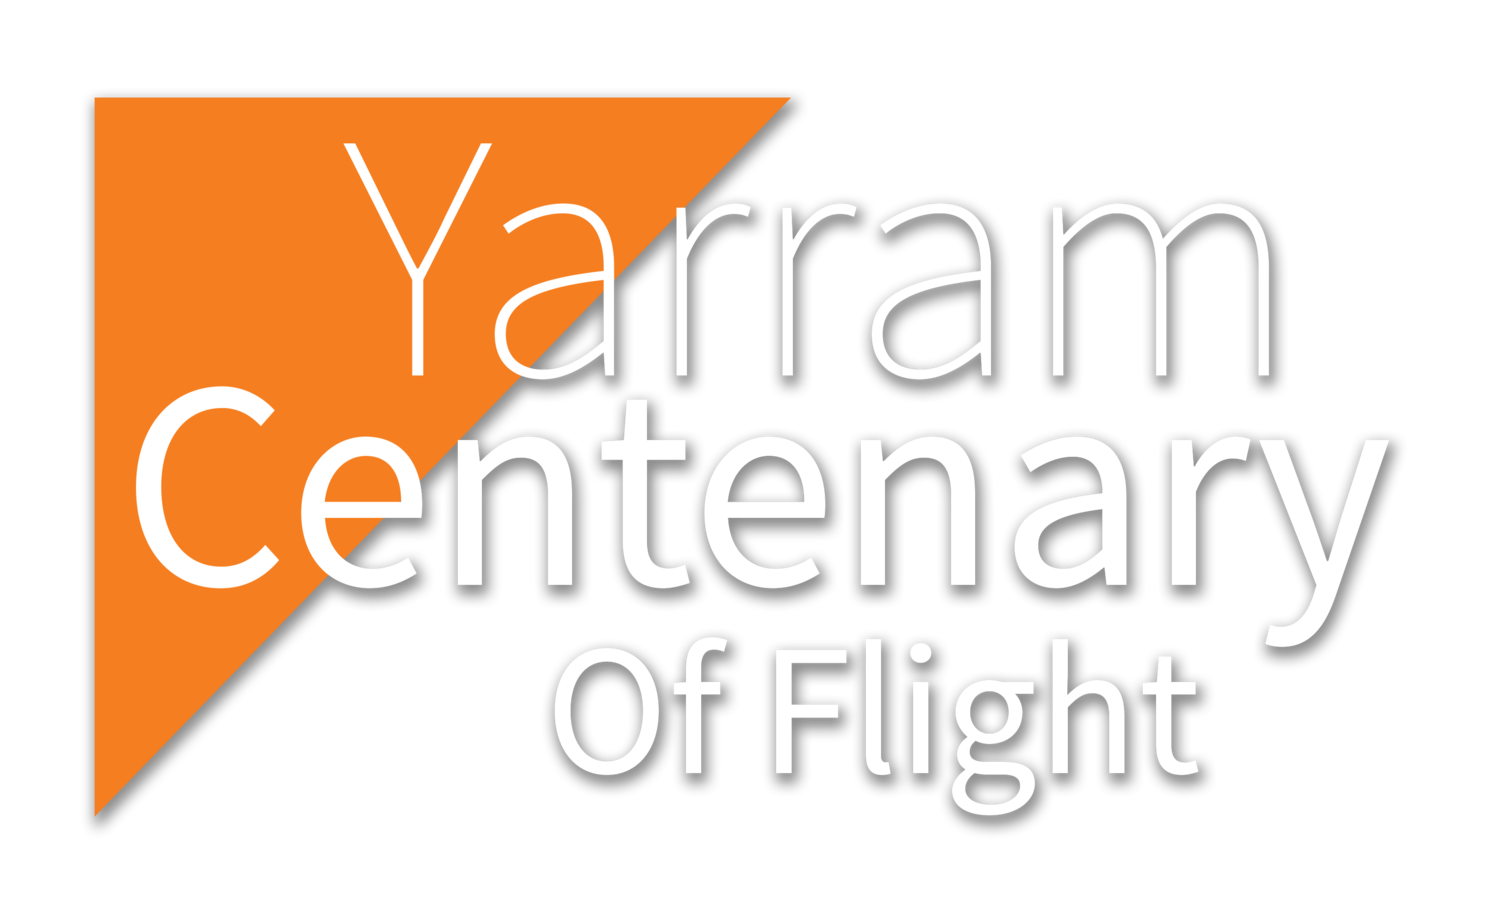 Yarram Centenary Of Flight